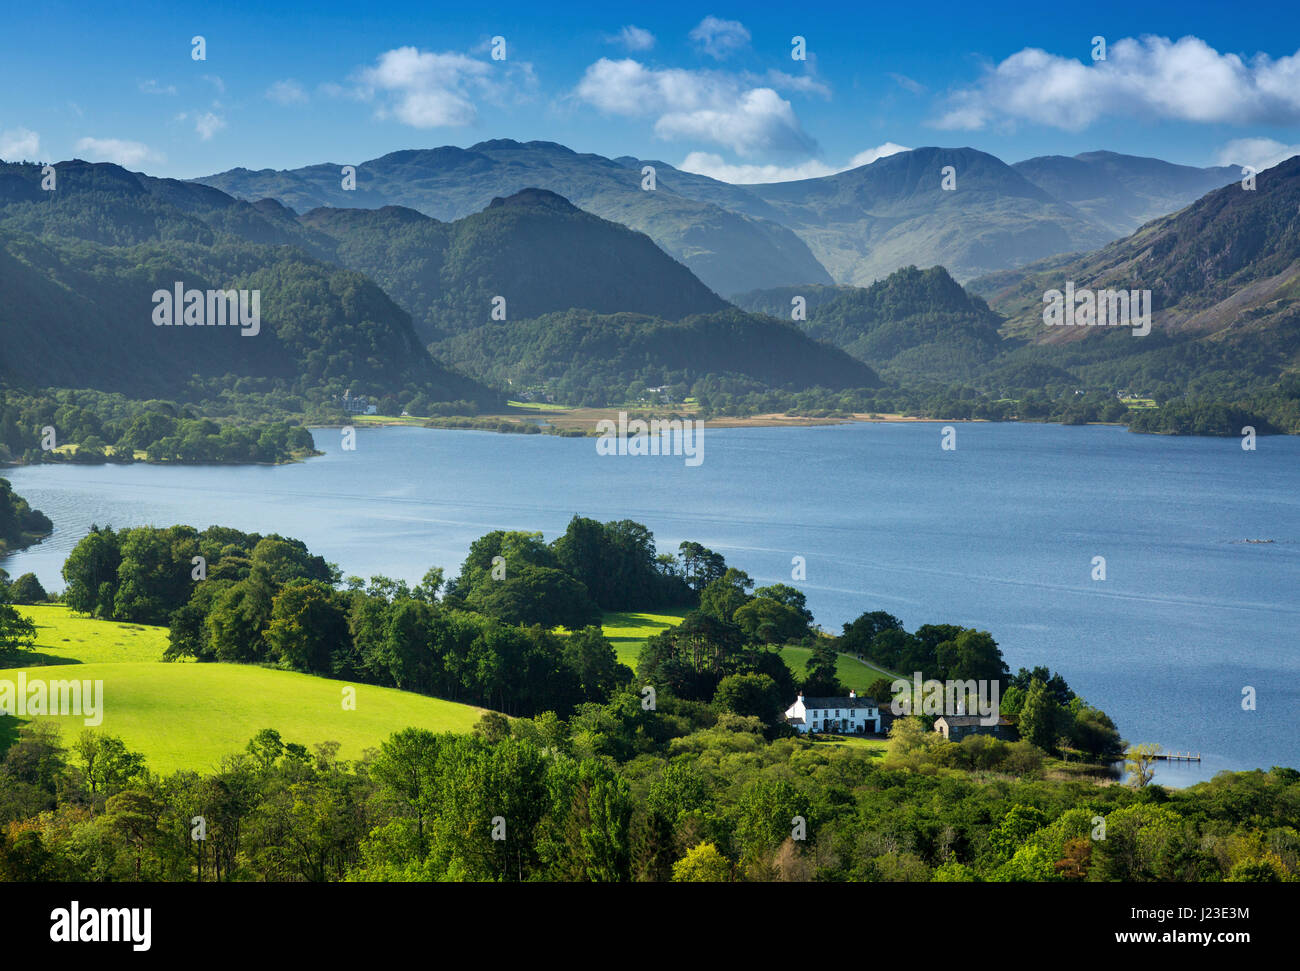 Derwentwater, Lake District, Inglaterra, Reino Unido - English Lake District, Derwent paisaje de agua Imagen De Stock